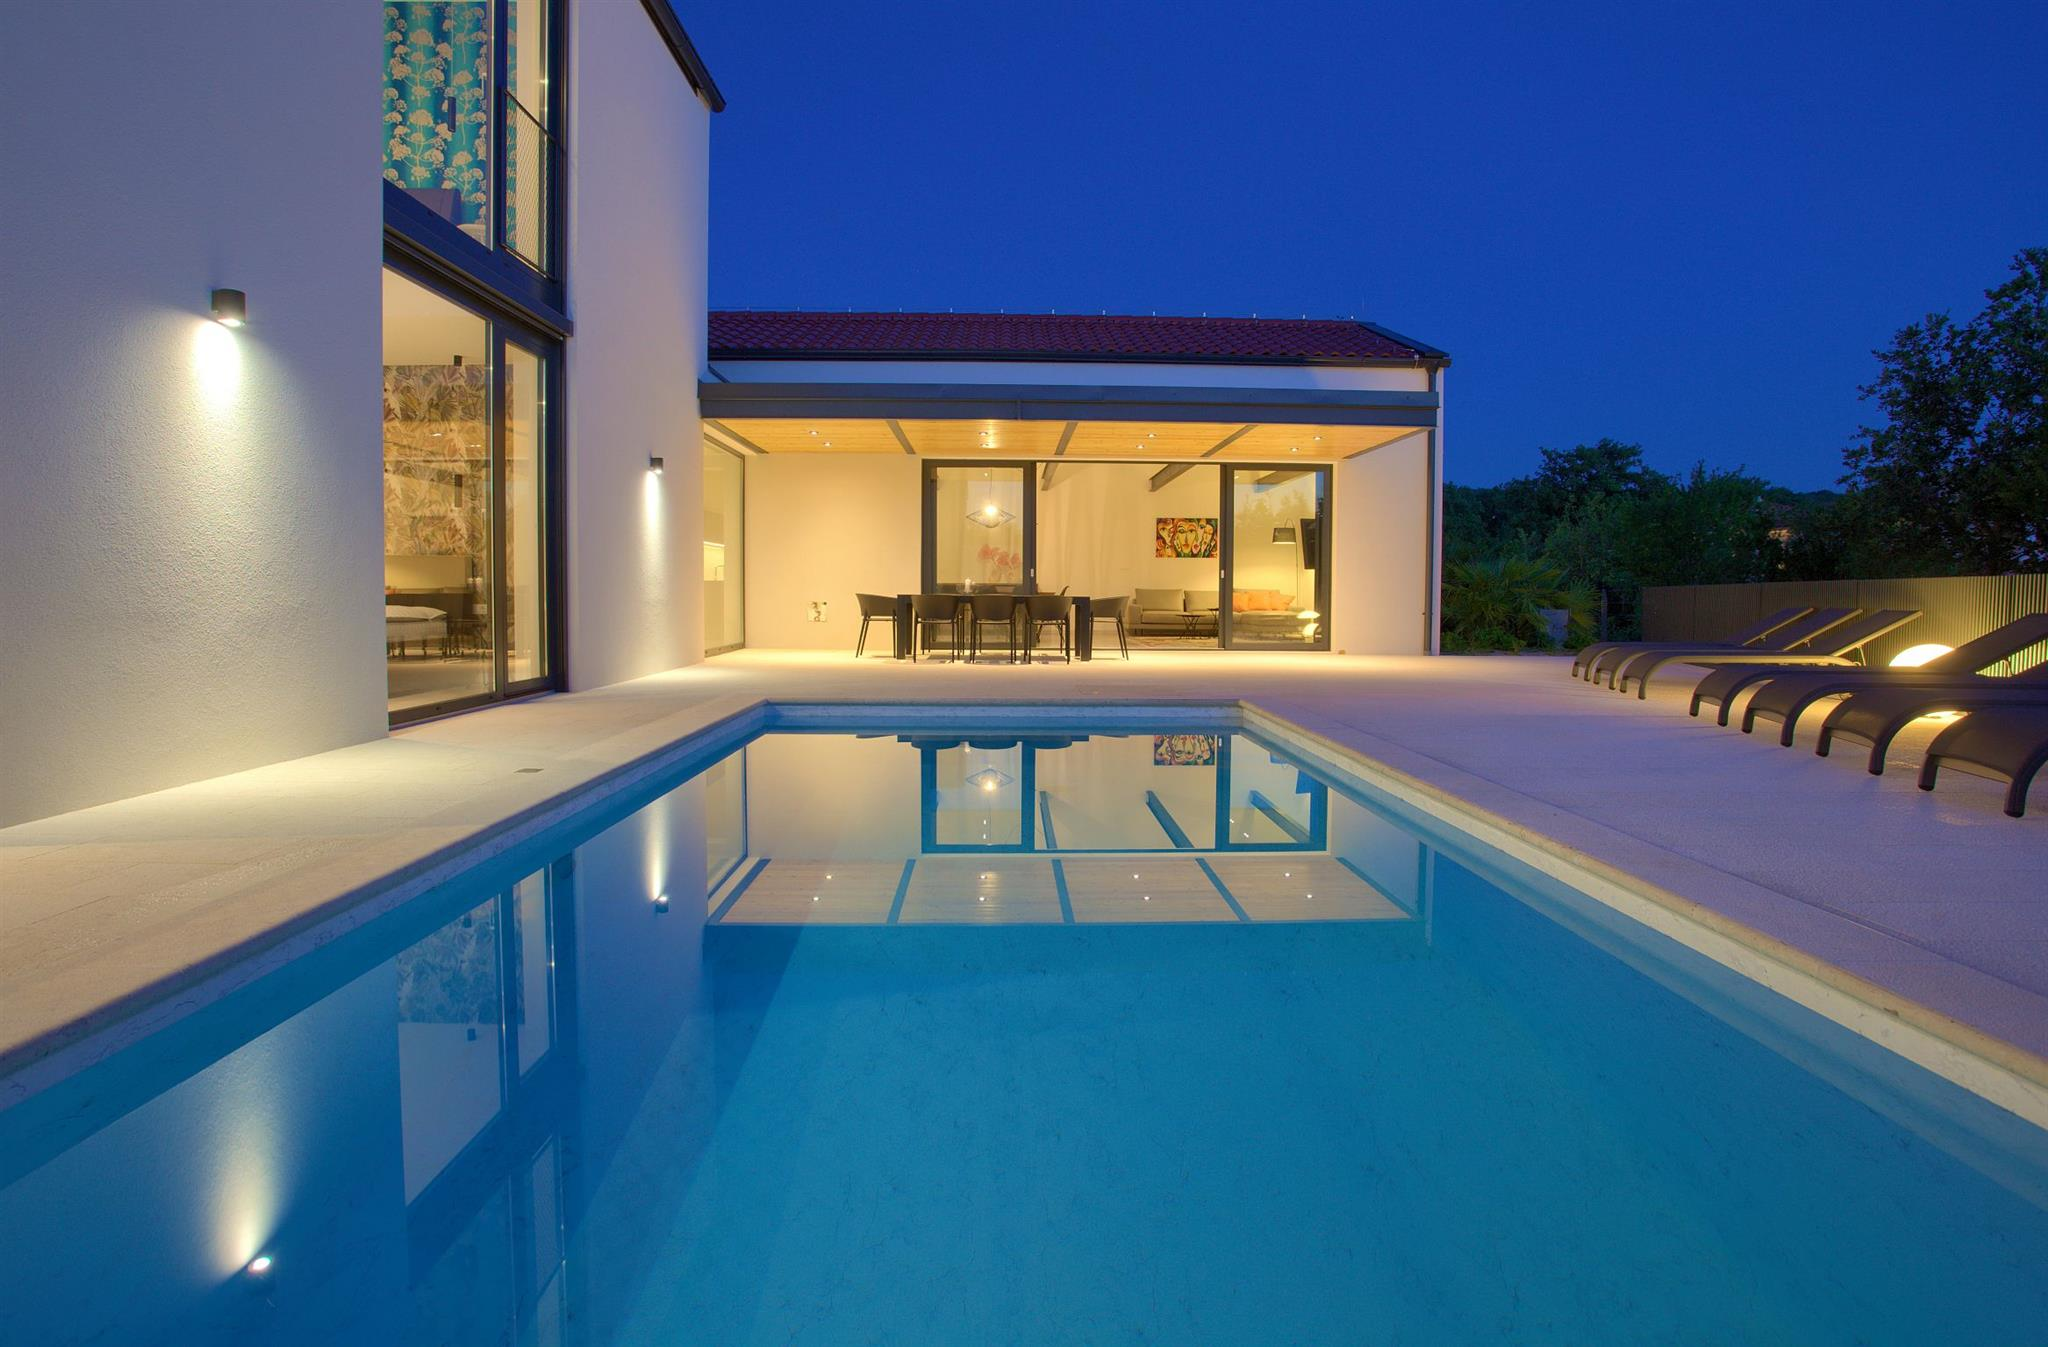 Casa Forma with heated pool, Seaview and luxury of 5 stars